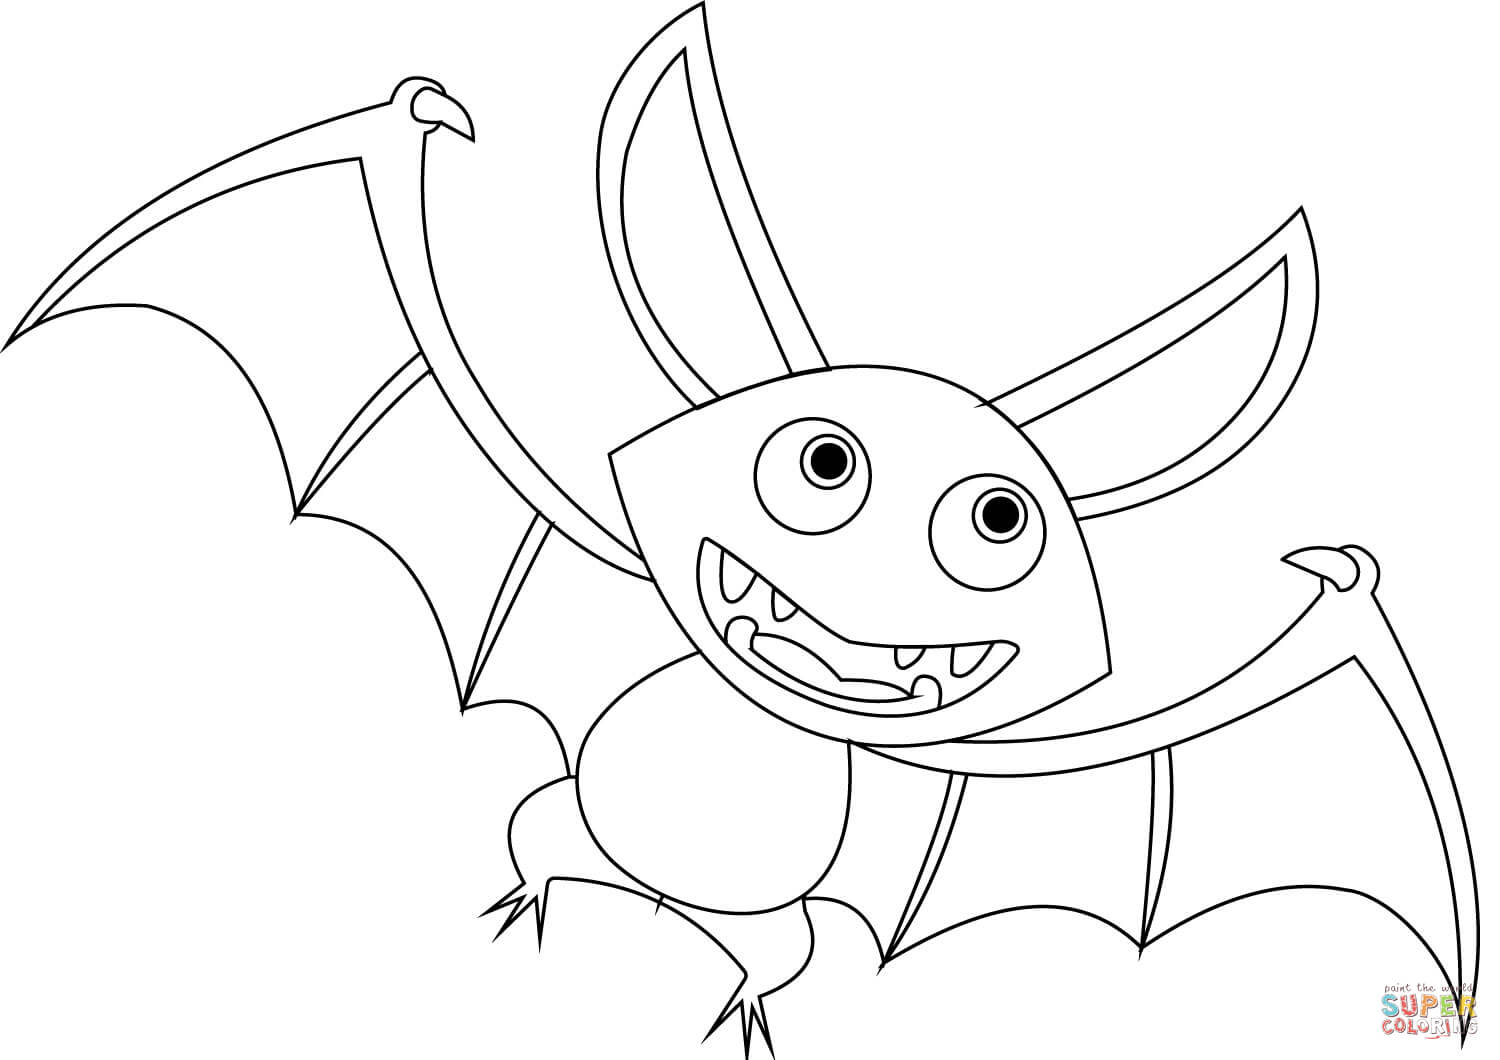 1500x1060 Cartoon Bat Coloring Page Free Printable Coloring Pages